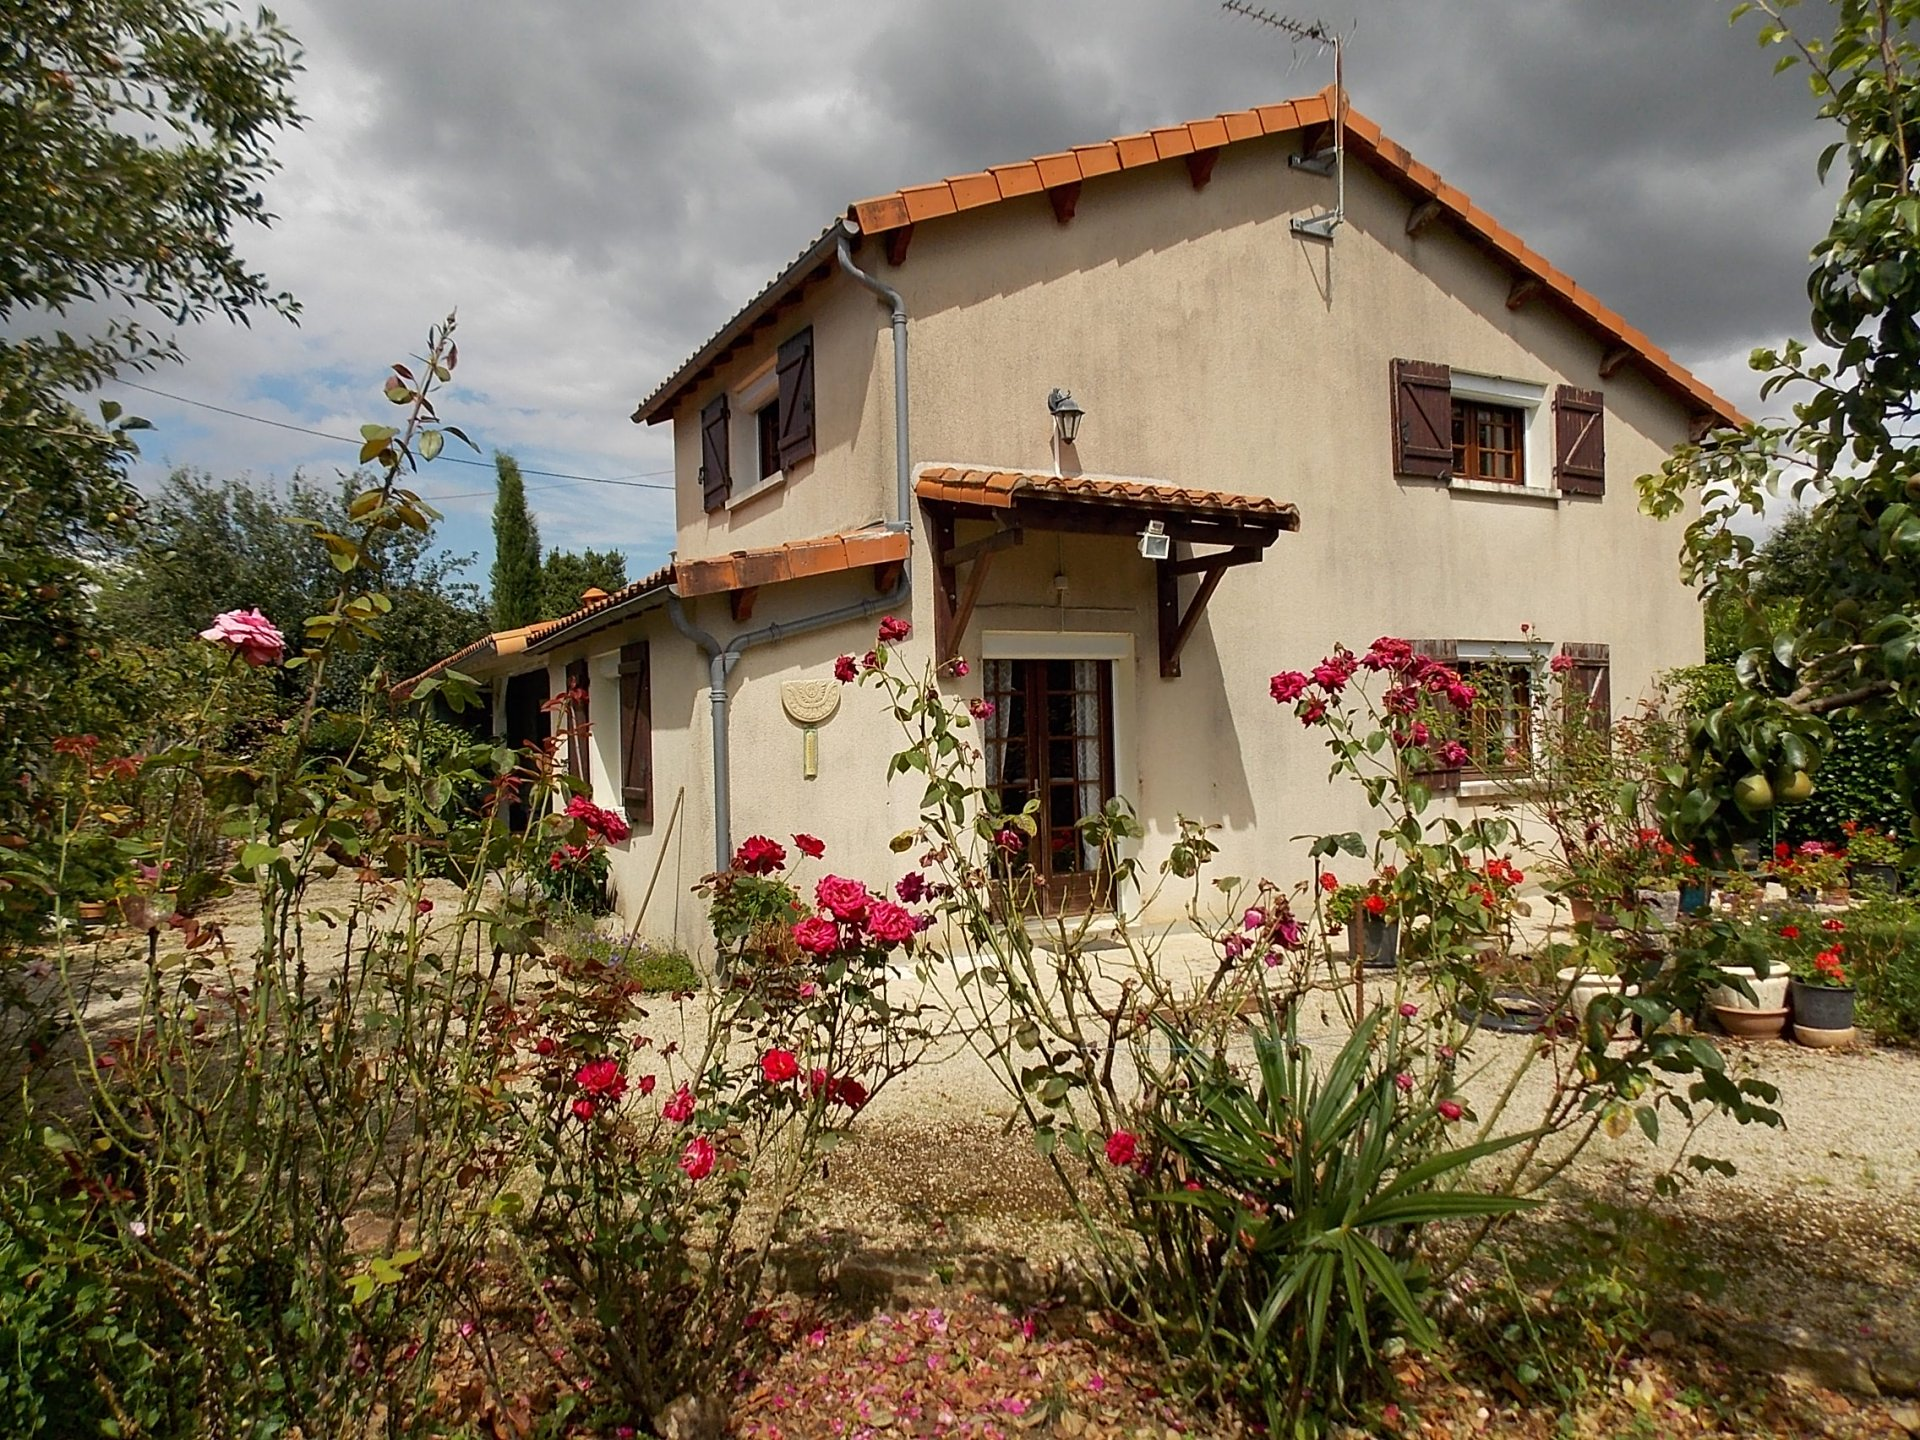 Detached, private home with delightful gardens